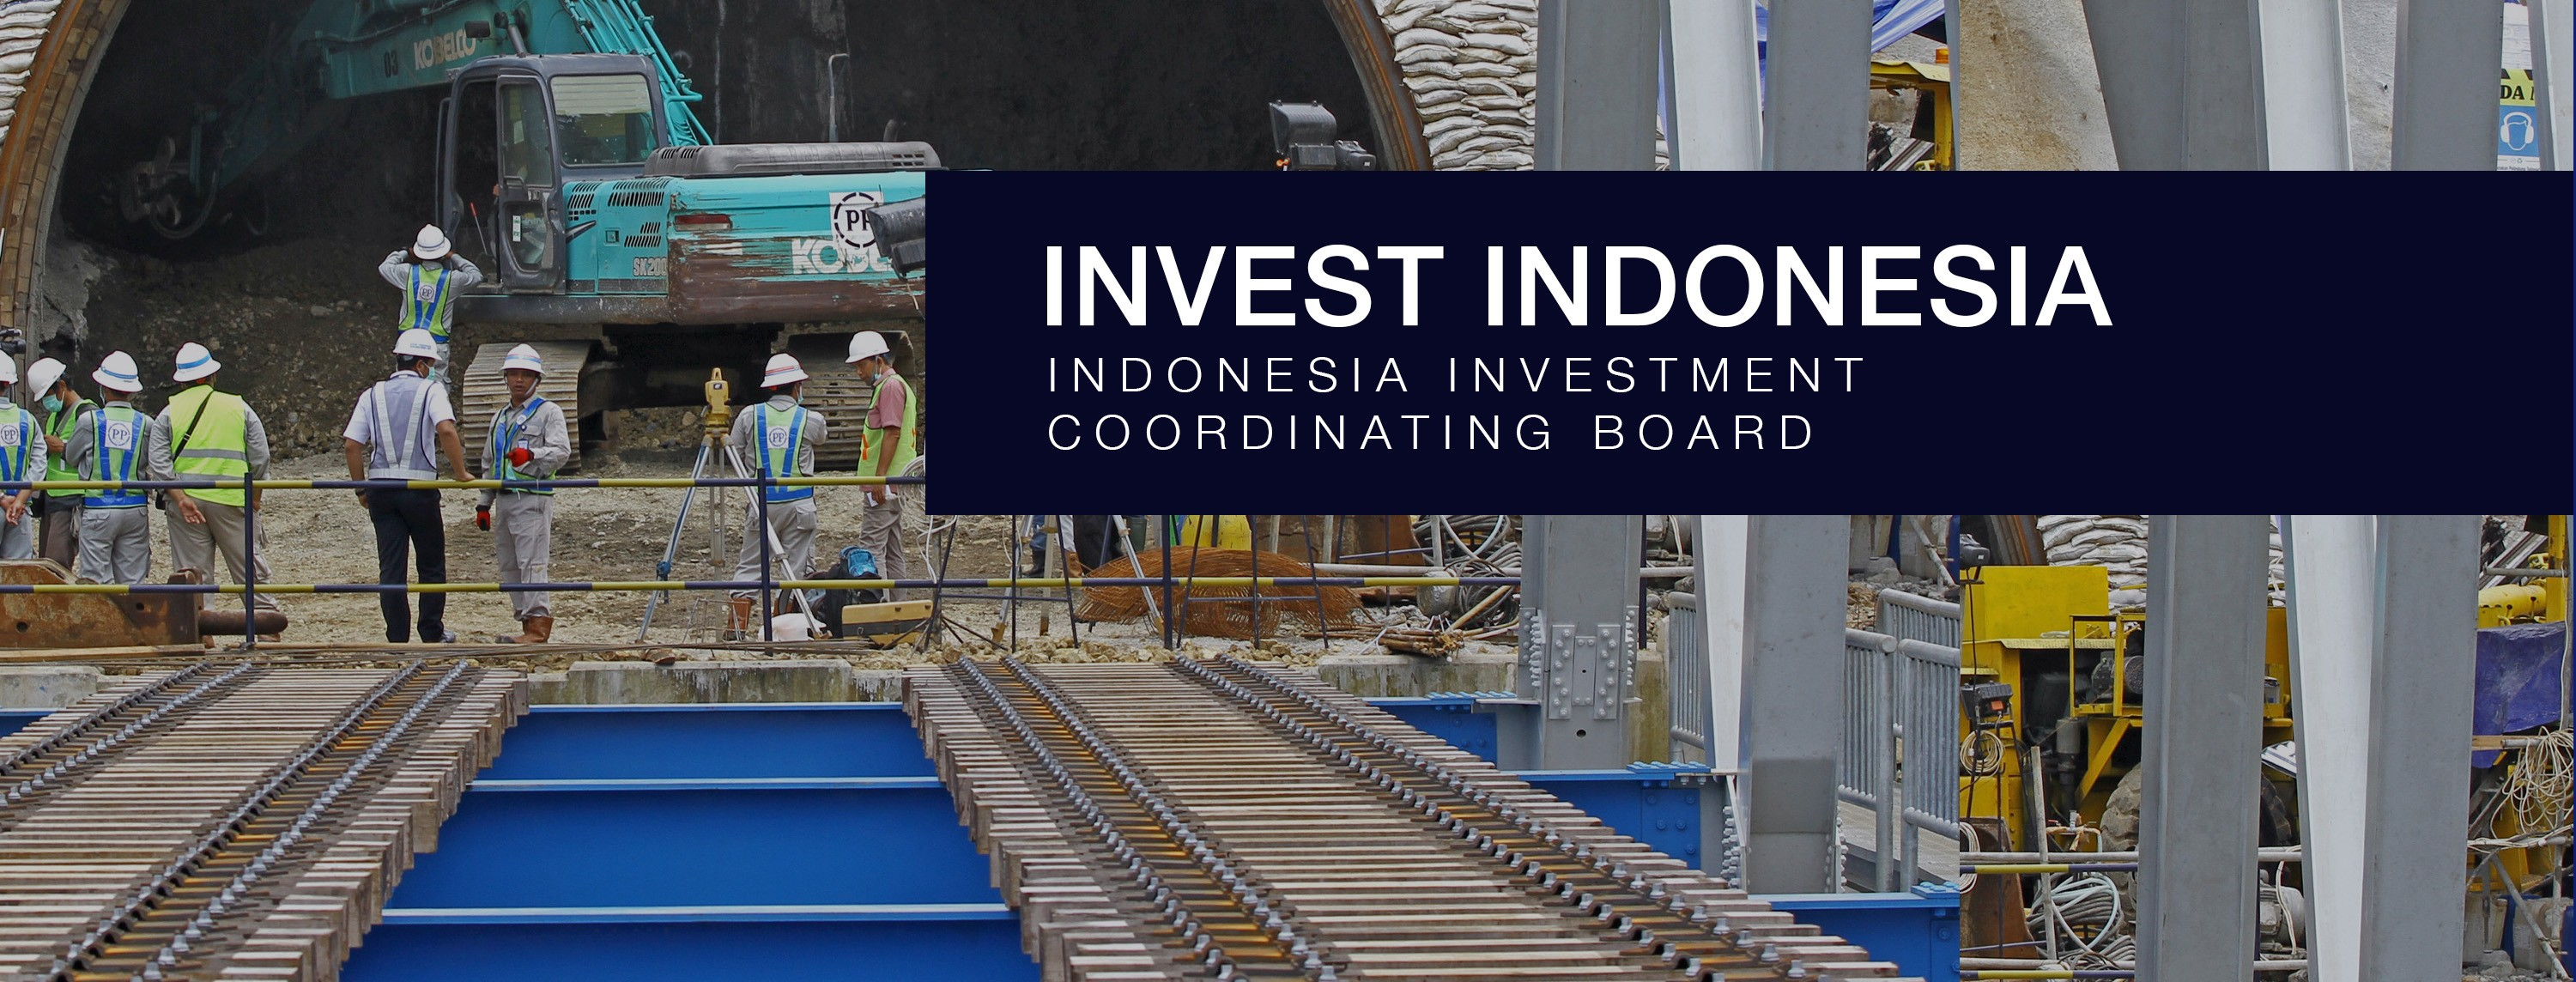 Board of investments indonesia airlines rg capital investment advisory services llc